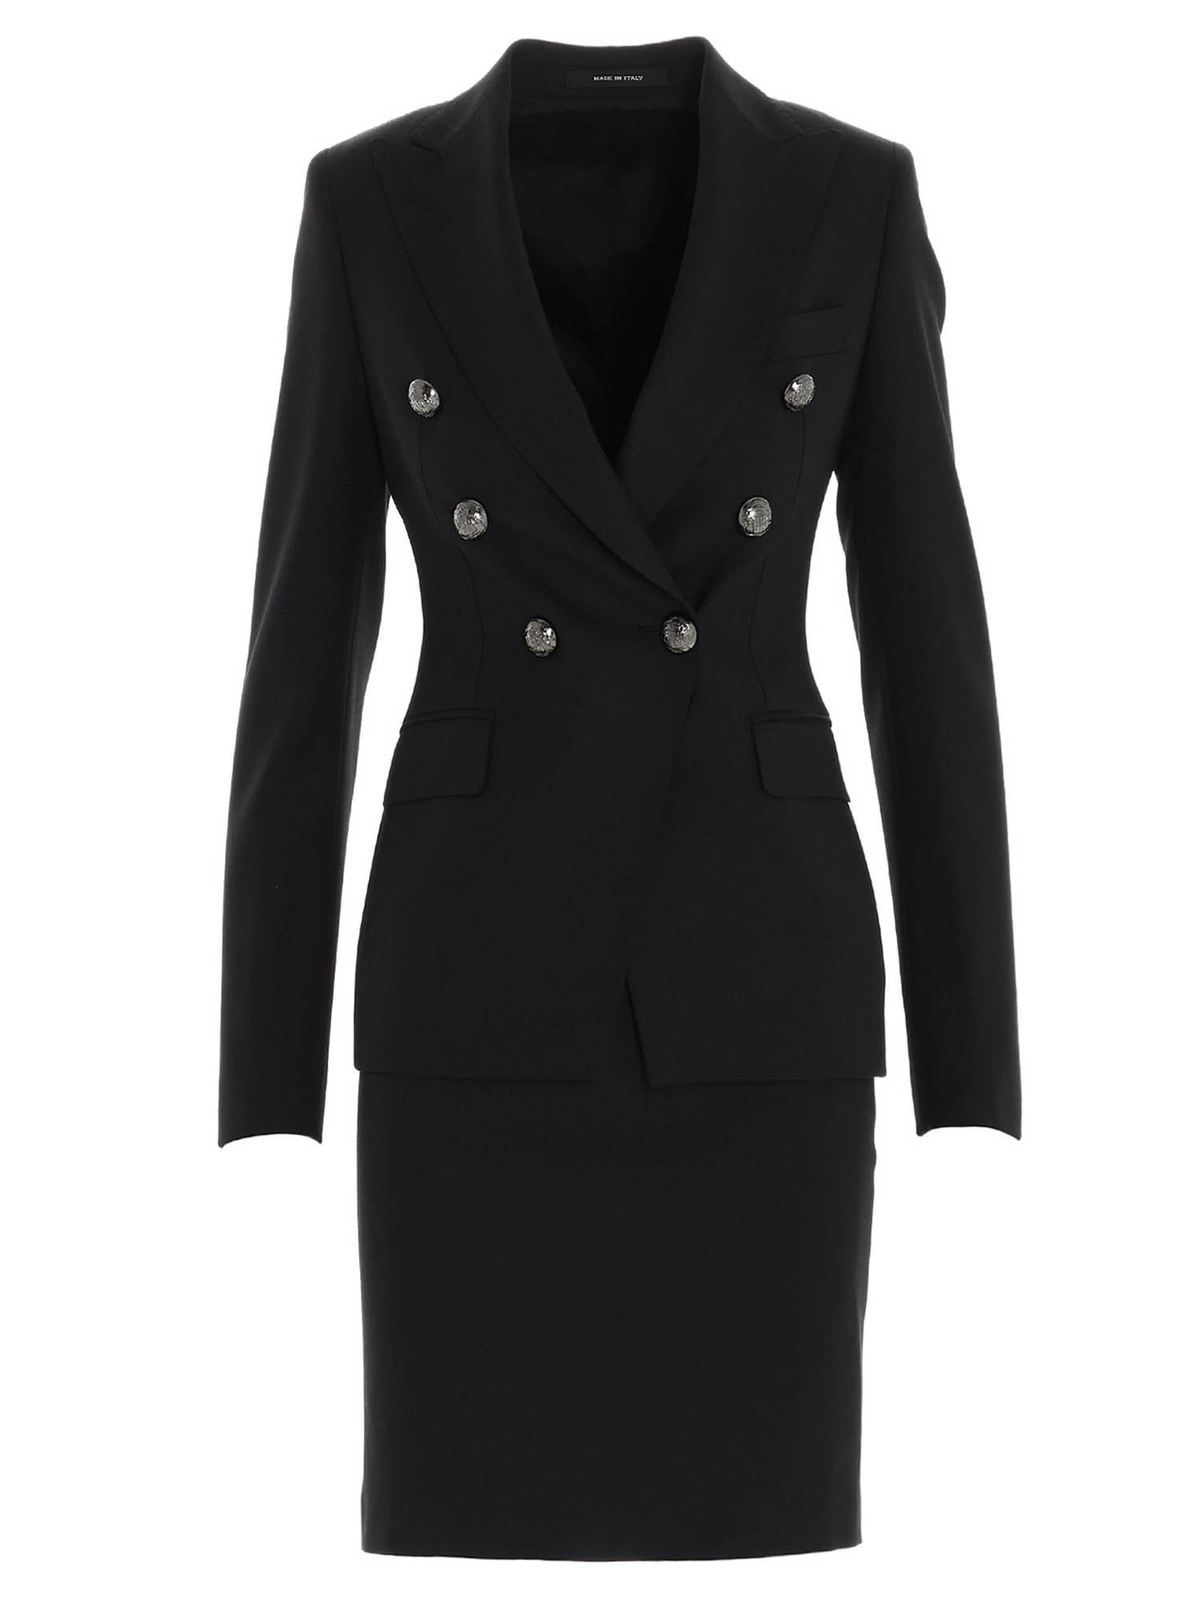 Tagliatore Z ALICYA SUIT IN BLACK